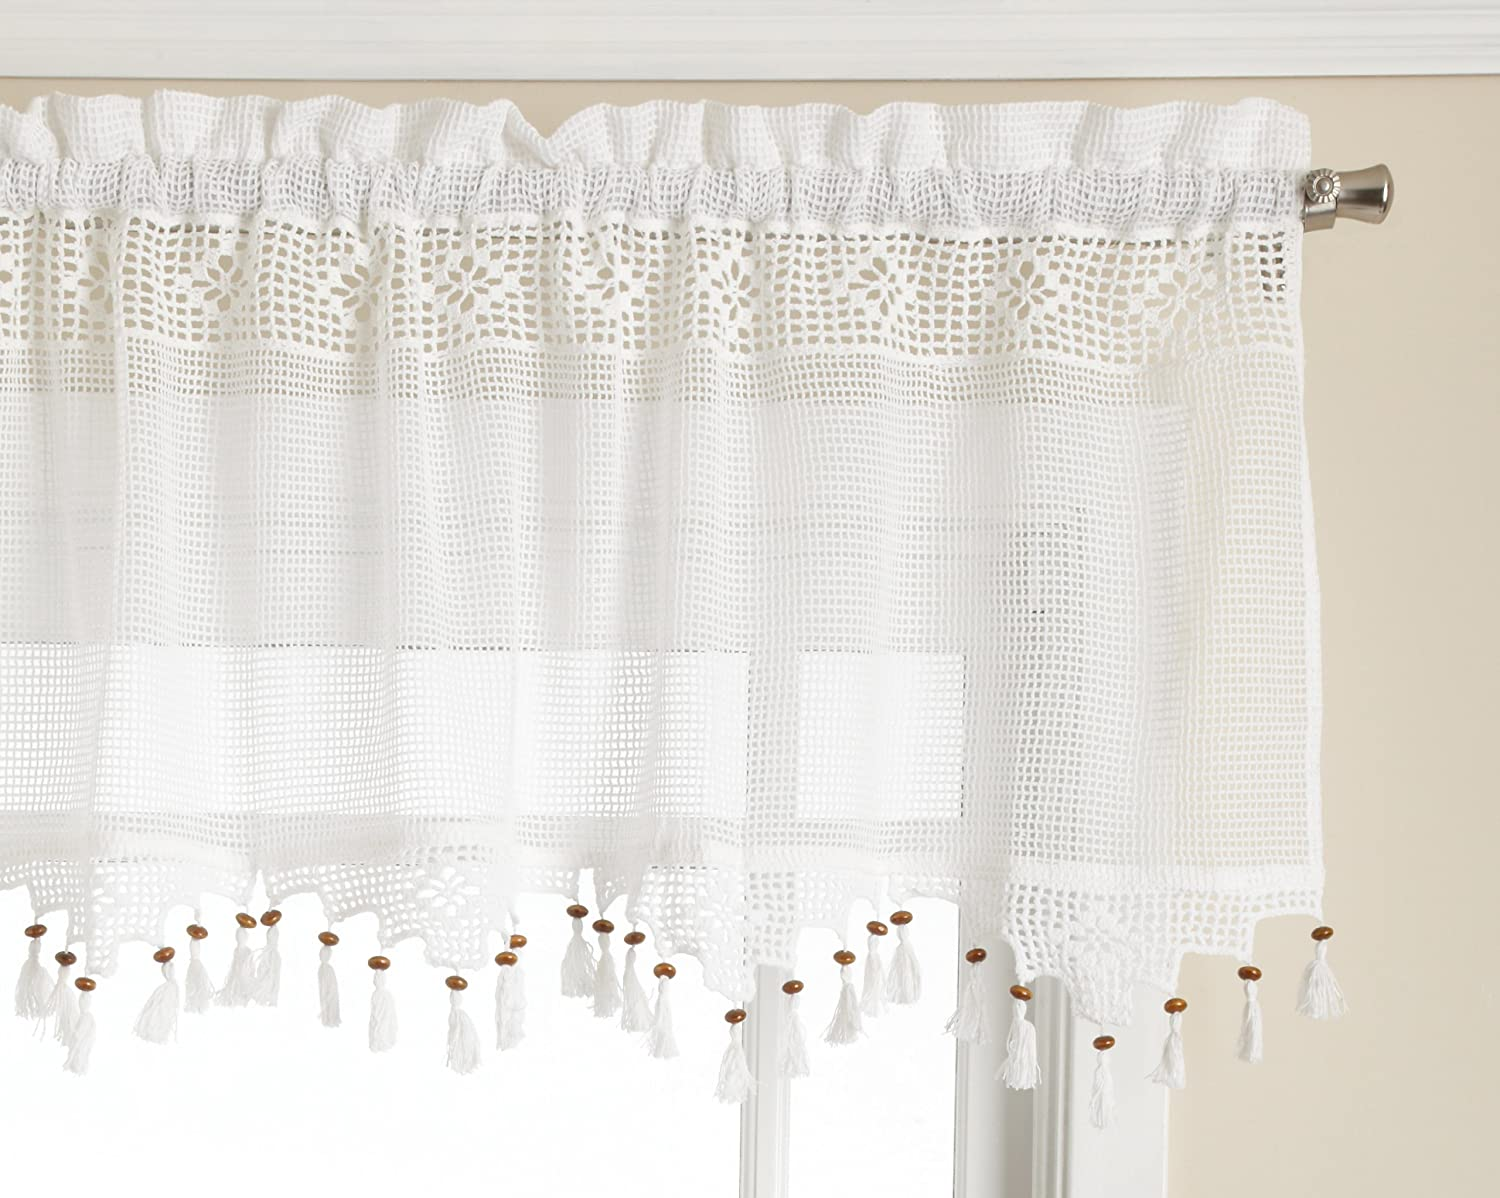 Amazon.com: Todayu0027s Curtain Gettysburg Knitted 20 Inch Crochet With Beaded  Tassel Valance, White: Home U0026 Kitchen